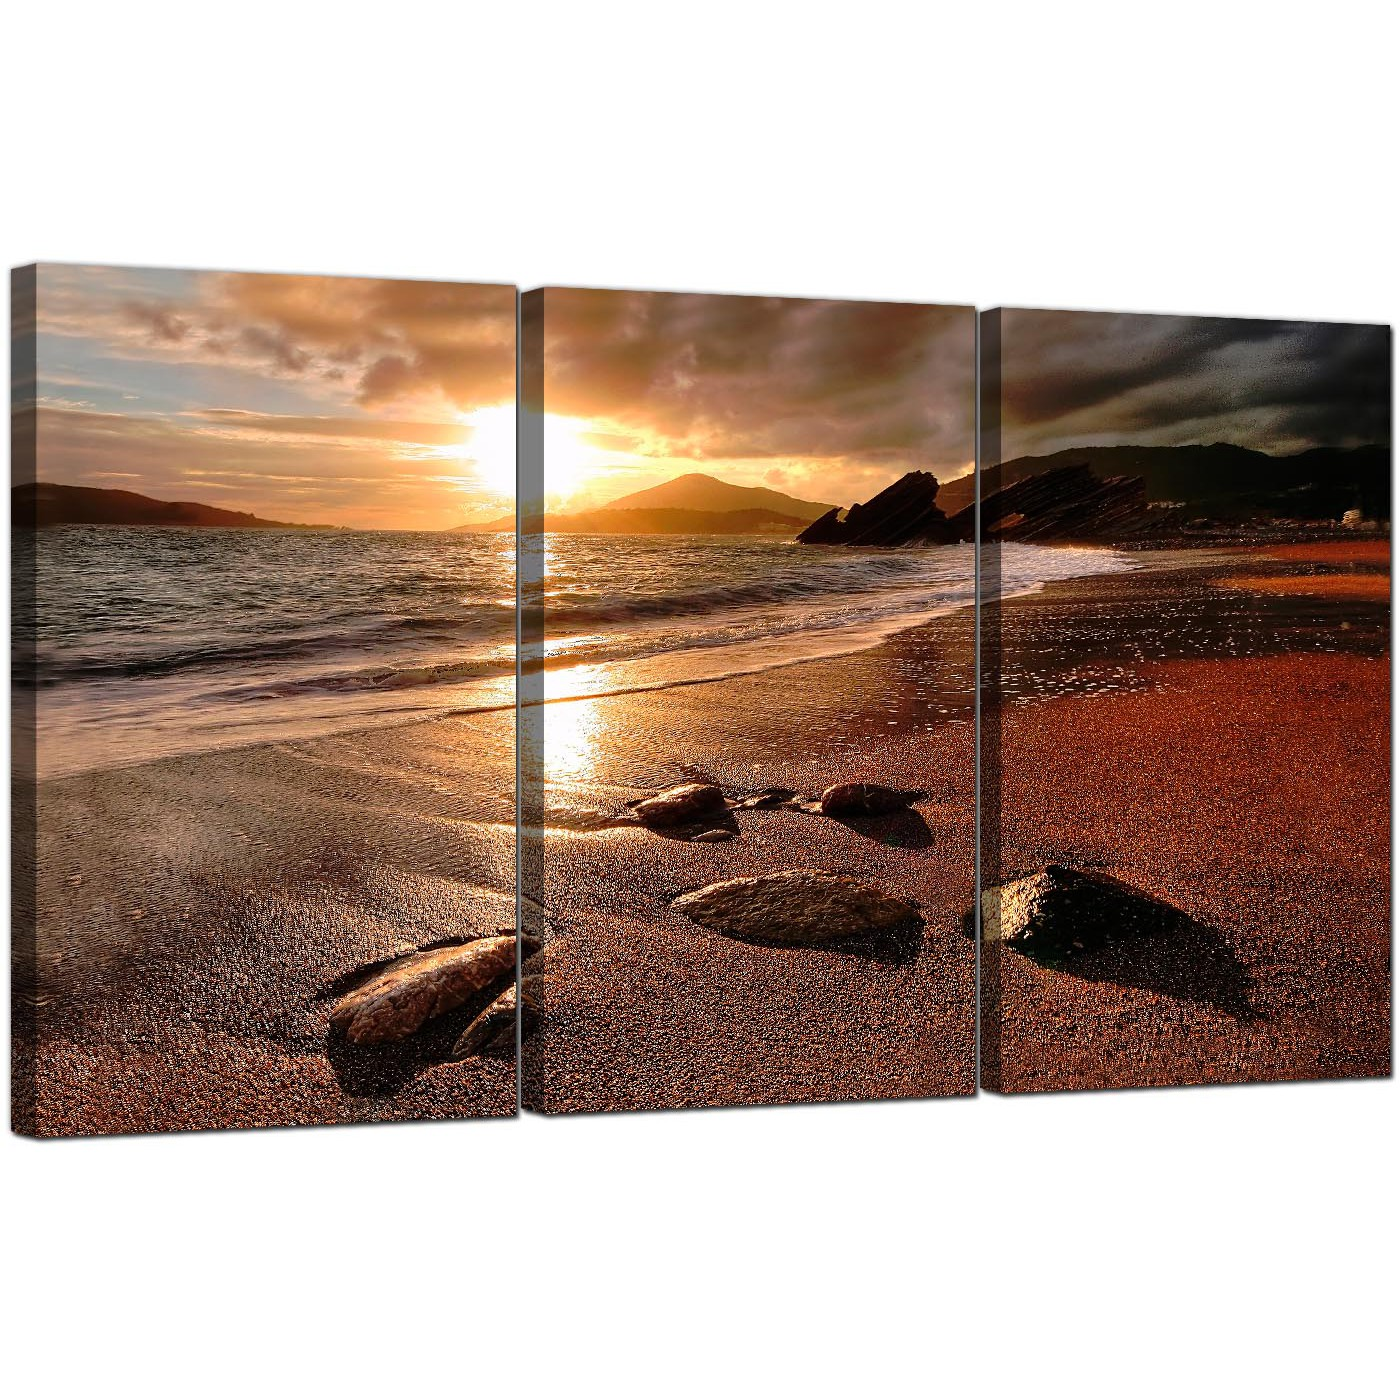 Cheap Canvas Pictures Cheap Beach Sunset Canvas Prints Set Of 3 For Your Bedroom